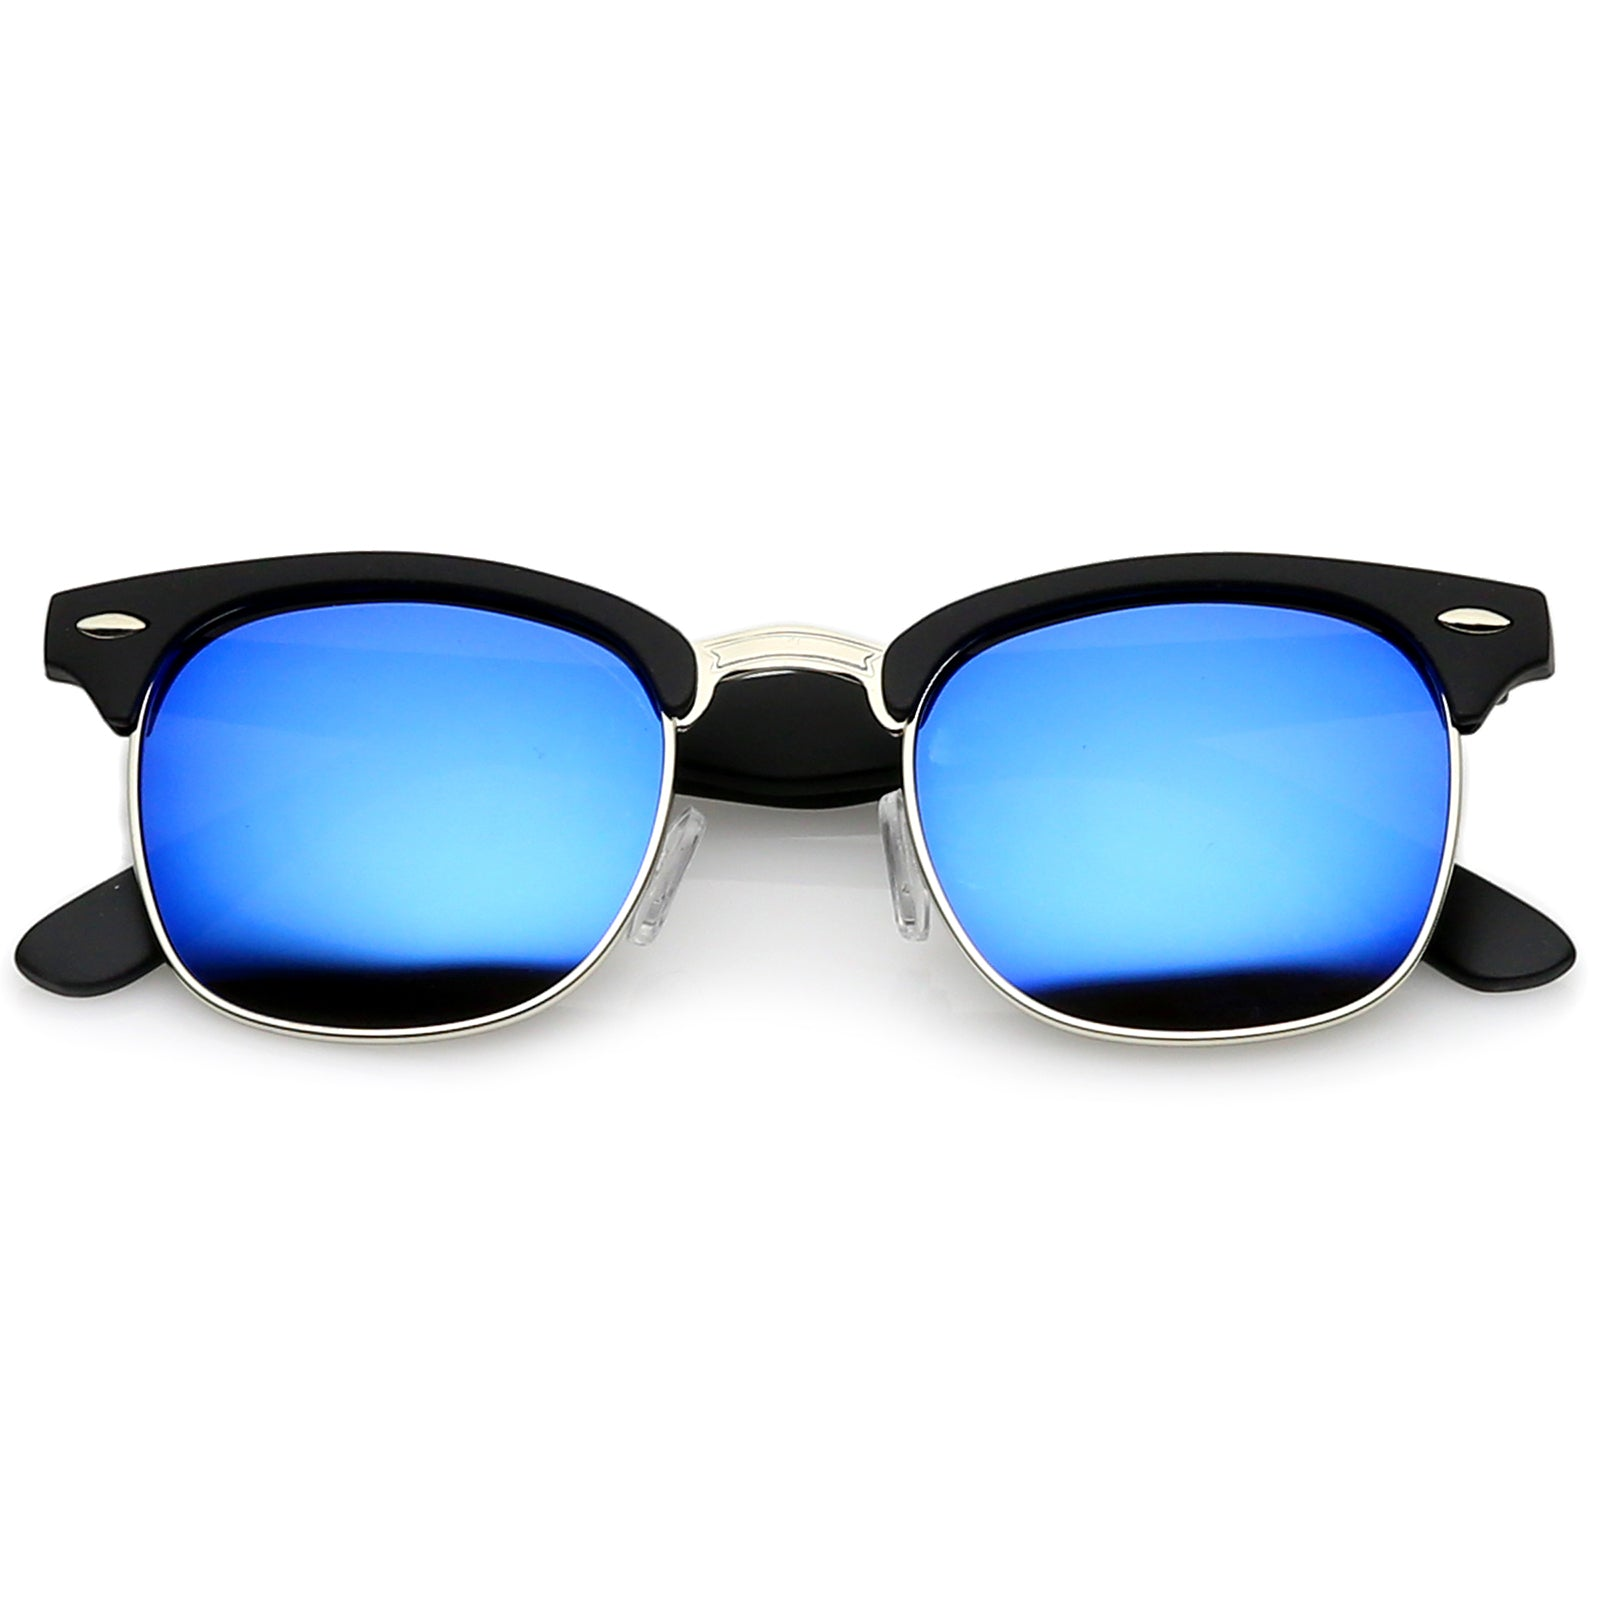 Rubberized Black-Silver / Blue Mirror